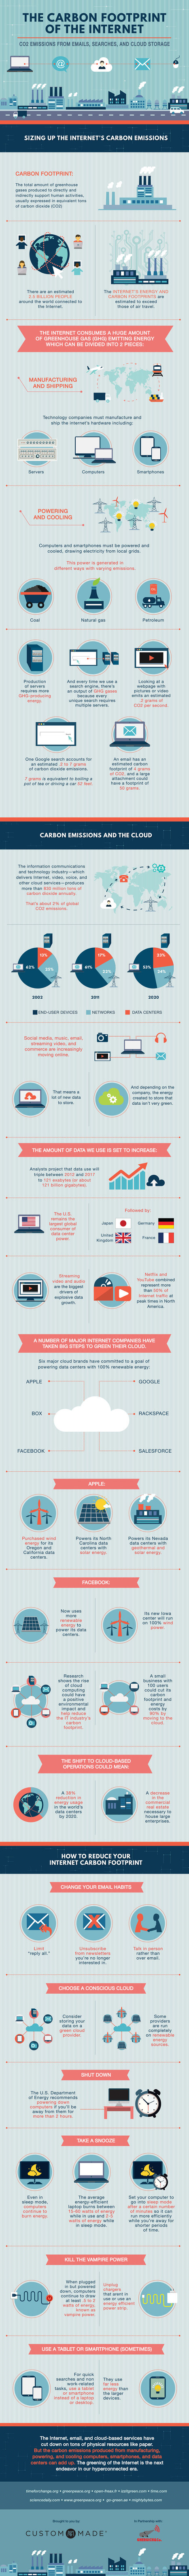 What's the carbon footprint of the Internet? [Infographic] | Sustaining Values | Scoop.it